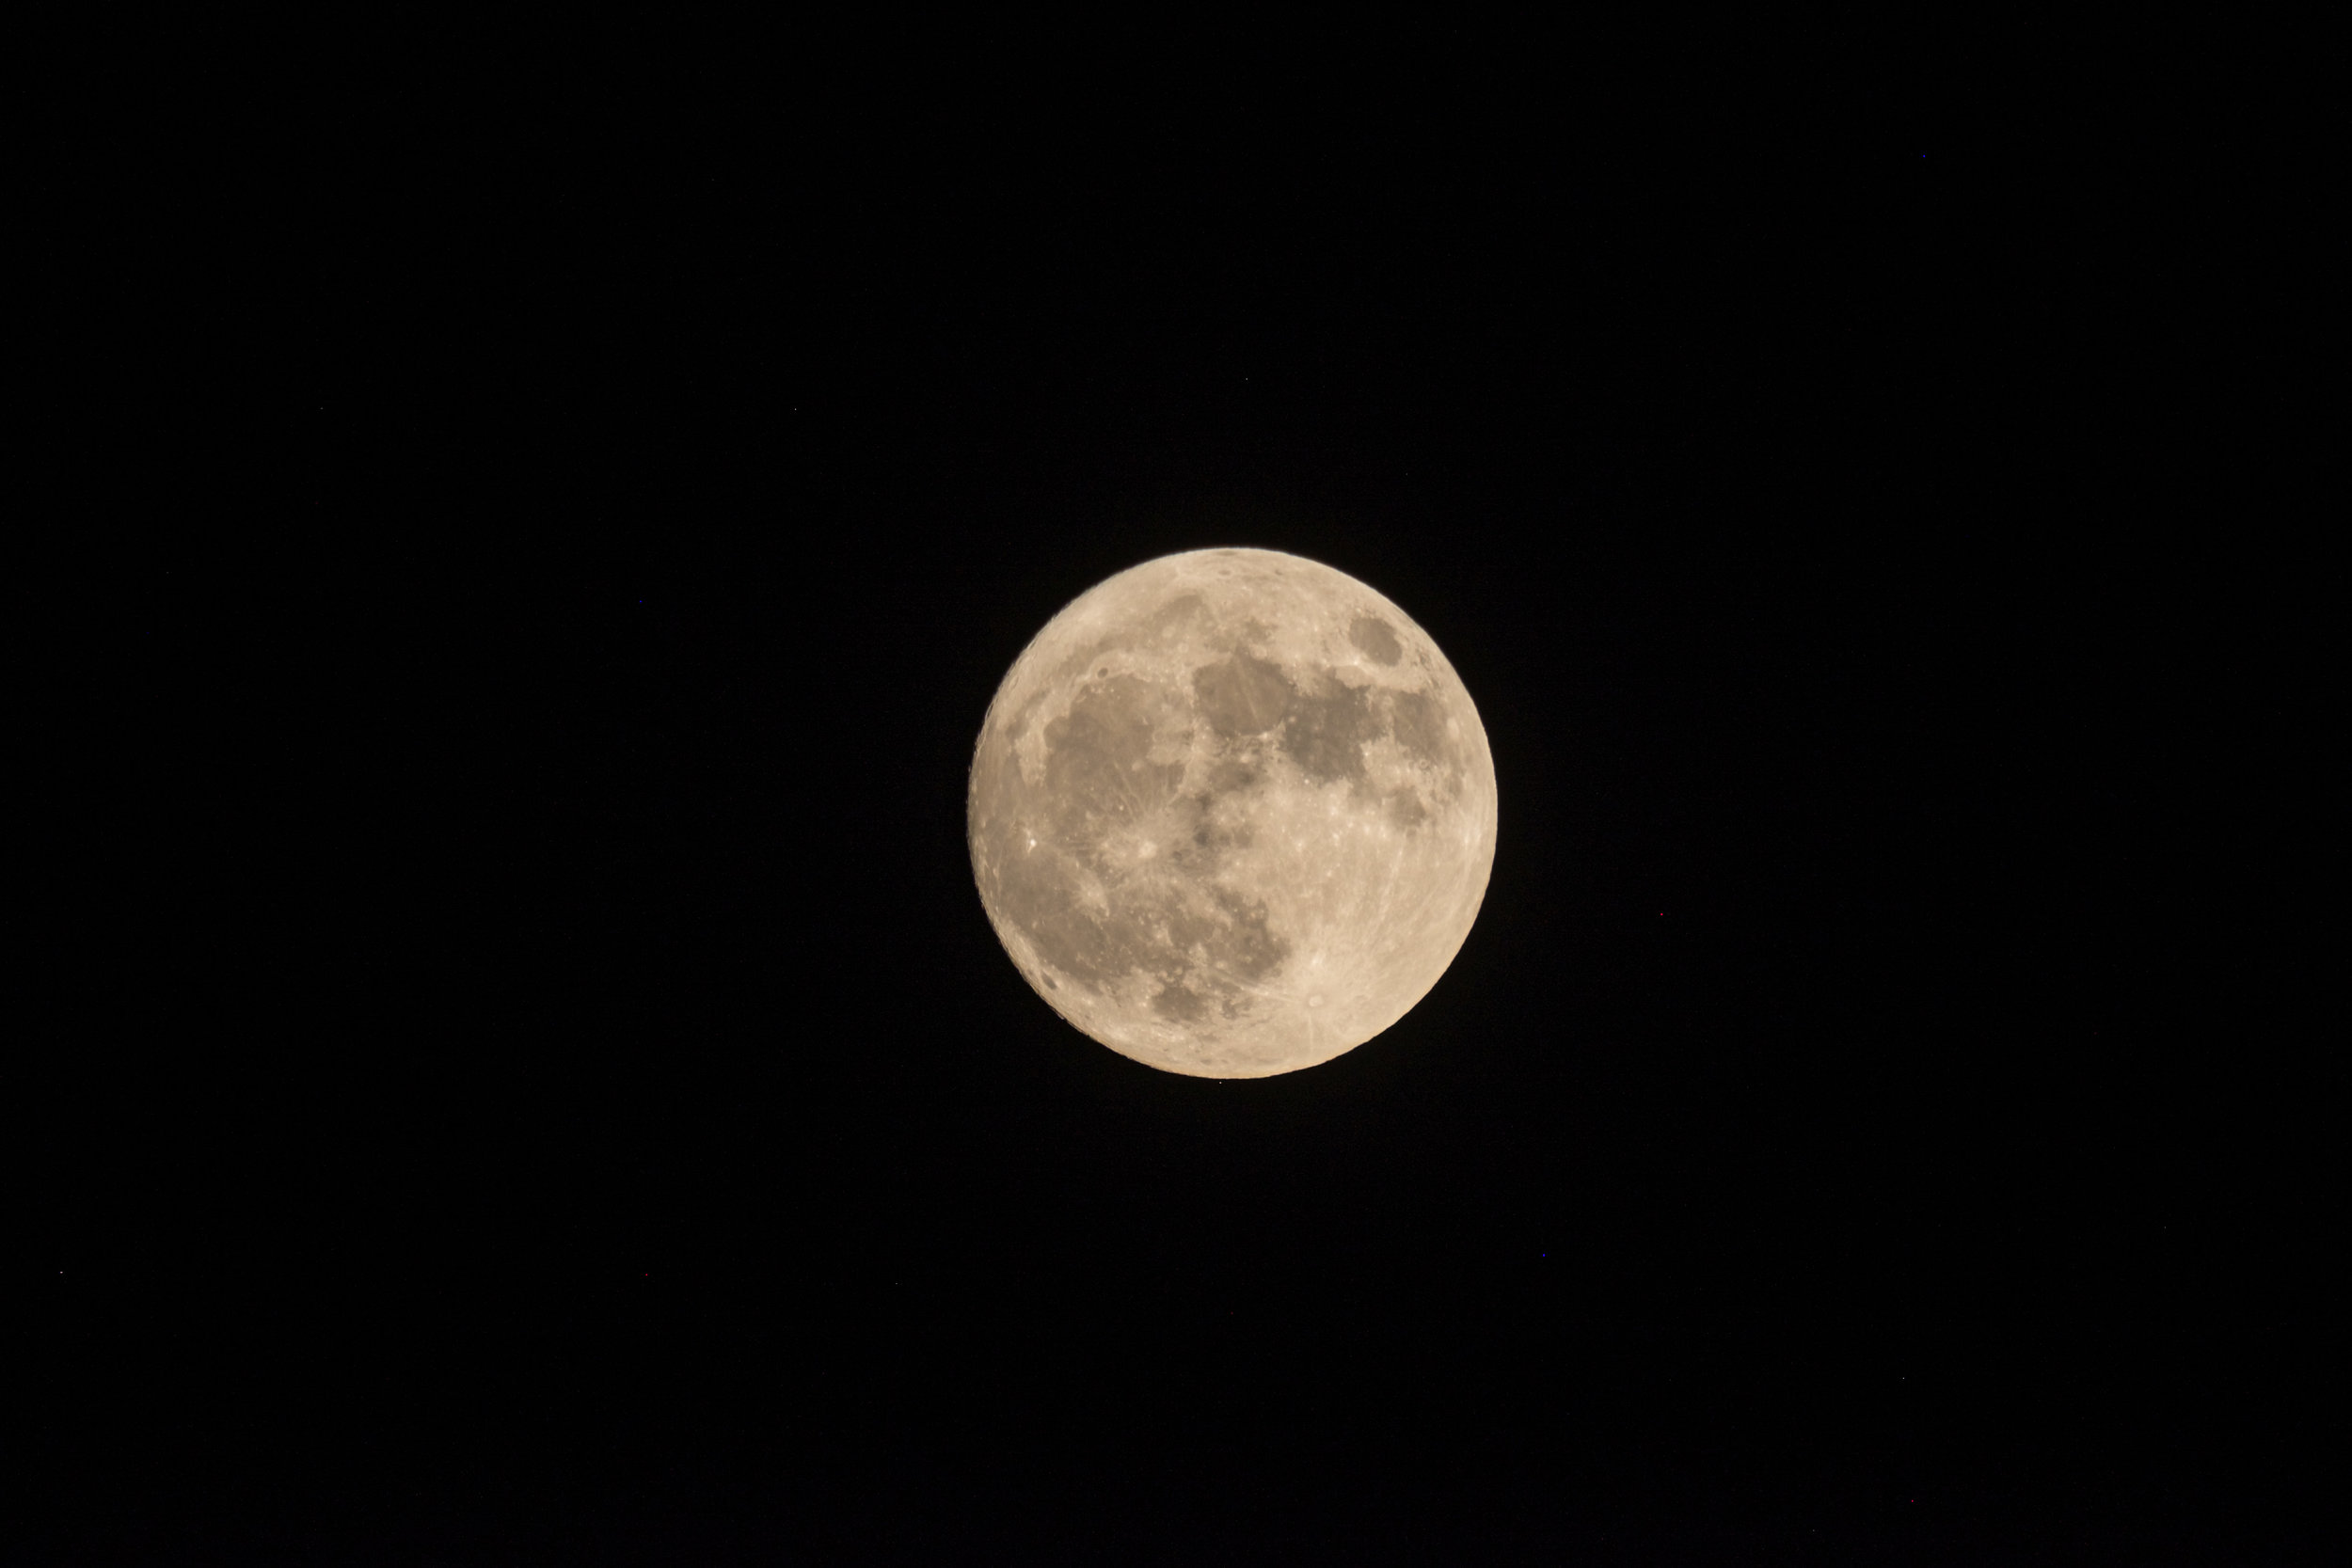 The full moon, which also happened to be a supermoon.